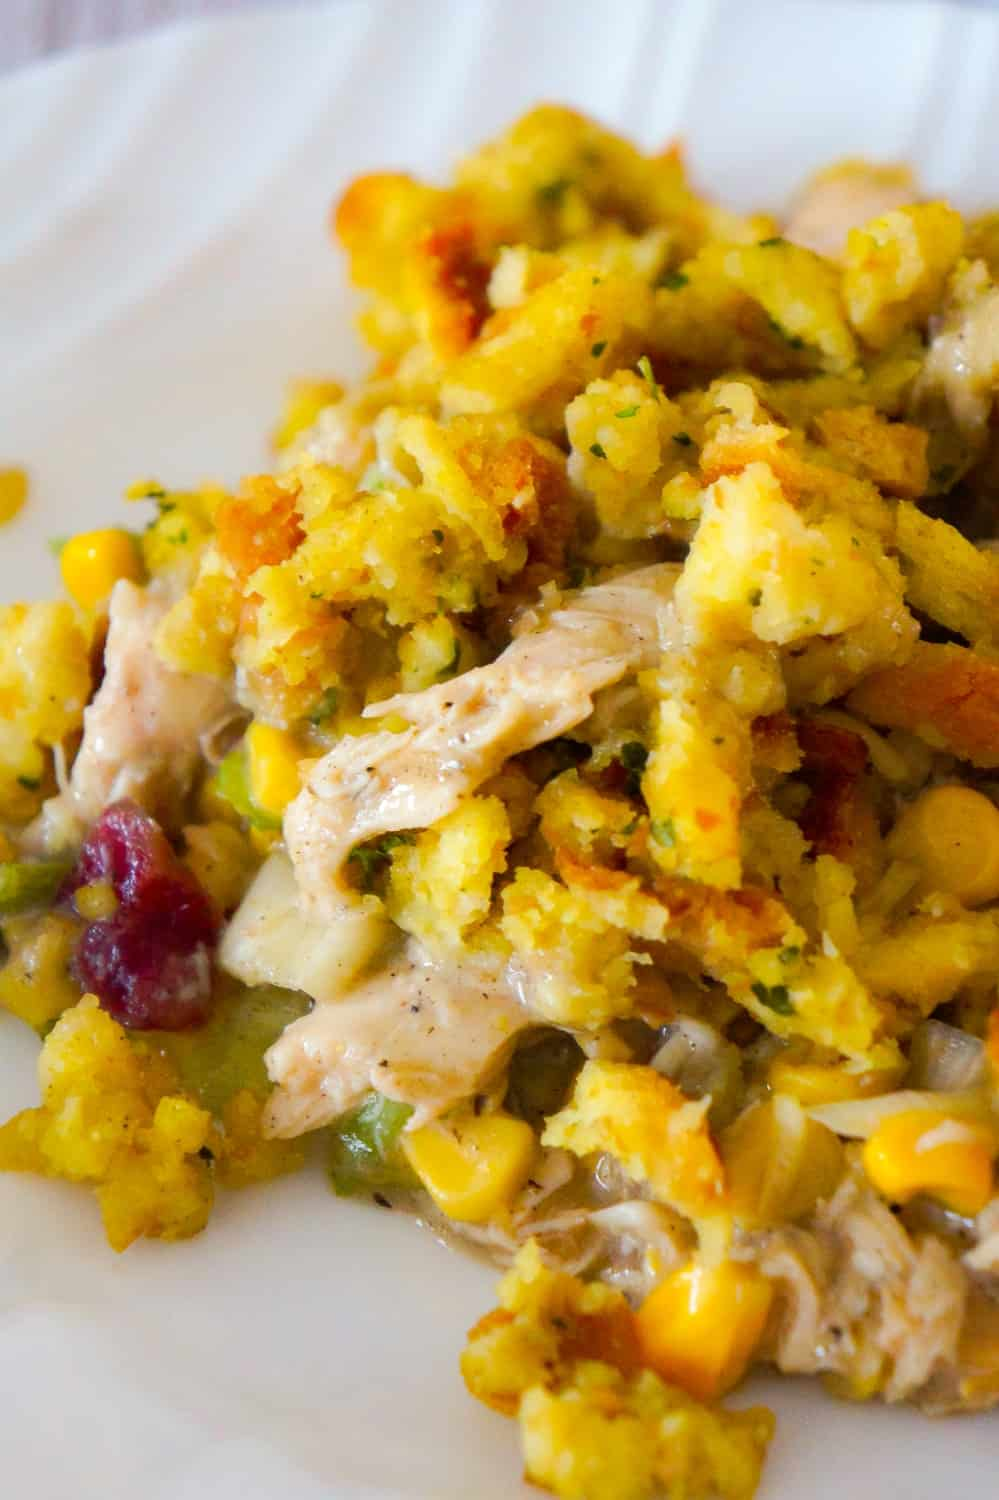 Chicken Casserole with Stuffing is an easy chicken dinner recipe perfect for weeknights. This hearty chicken casserole is loaded with shredded rotisserie chicken, corn, green onions and cranberry sauce and topped with stove top stuffing.